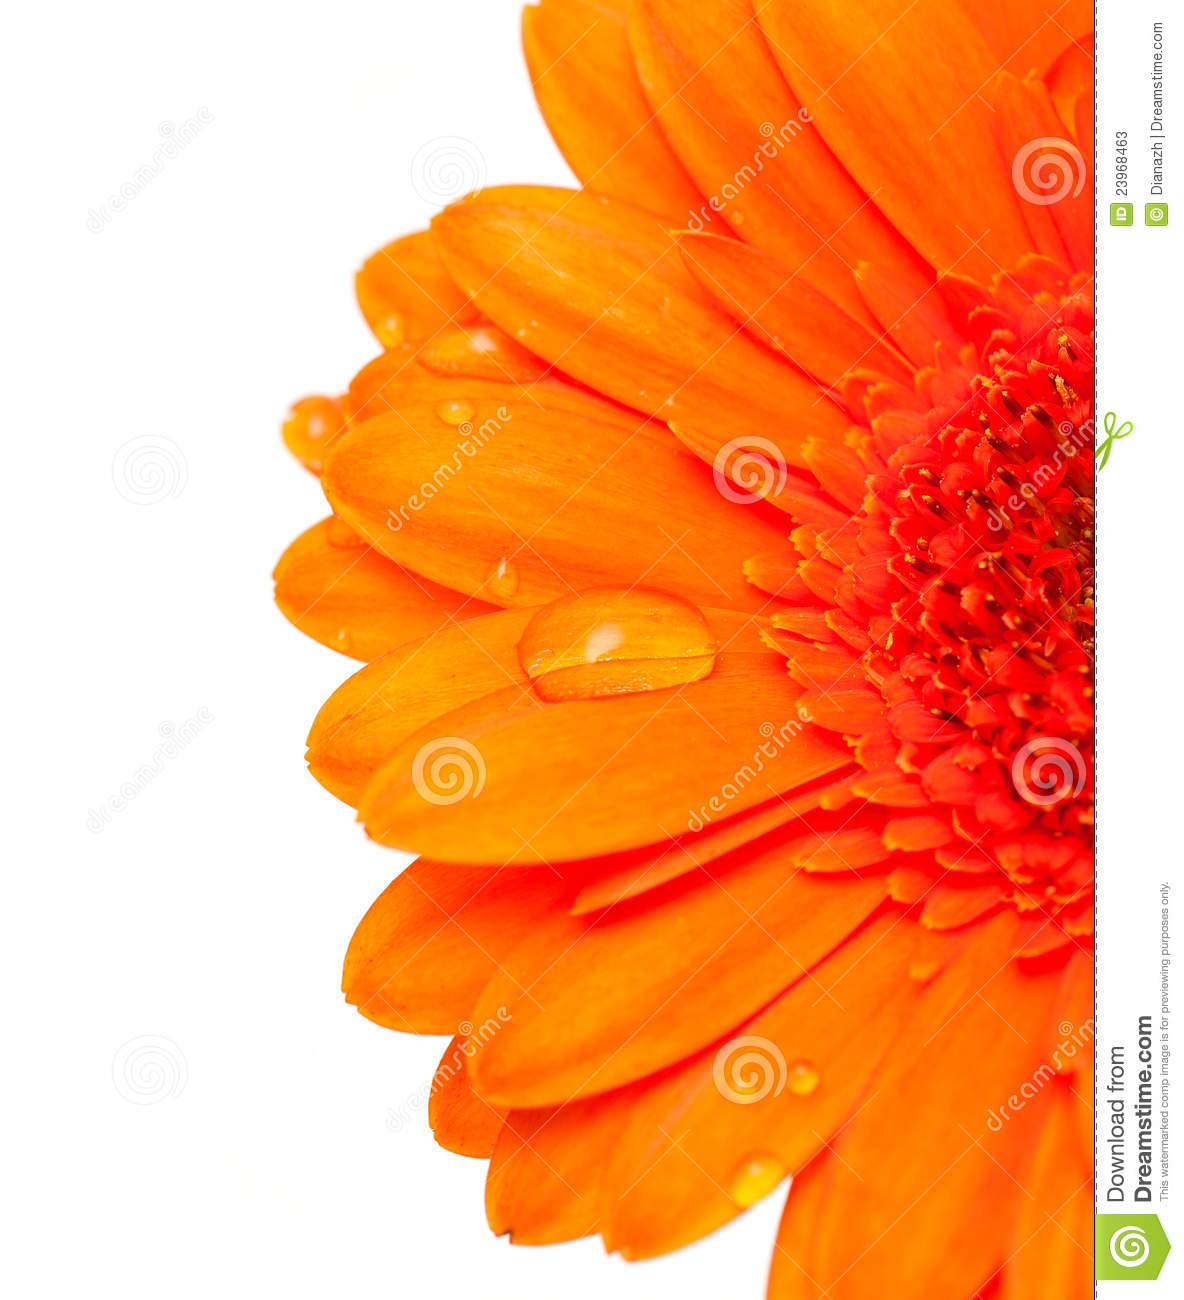 Orange Gerber Flower With Water Drops Stock s Image